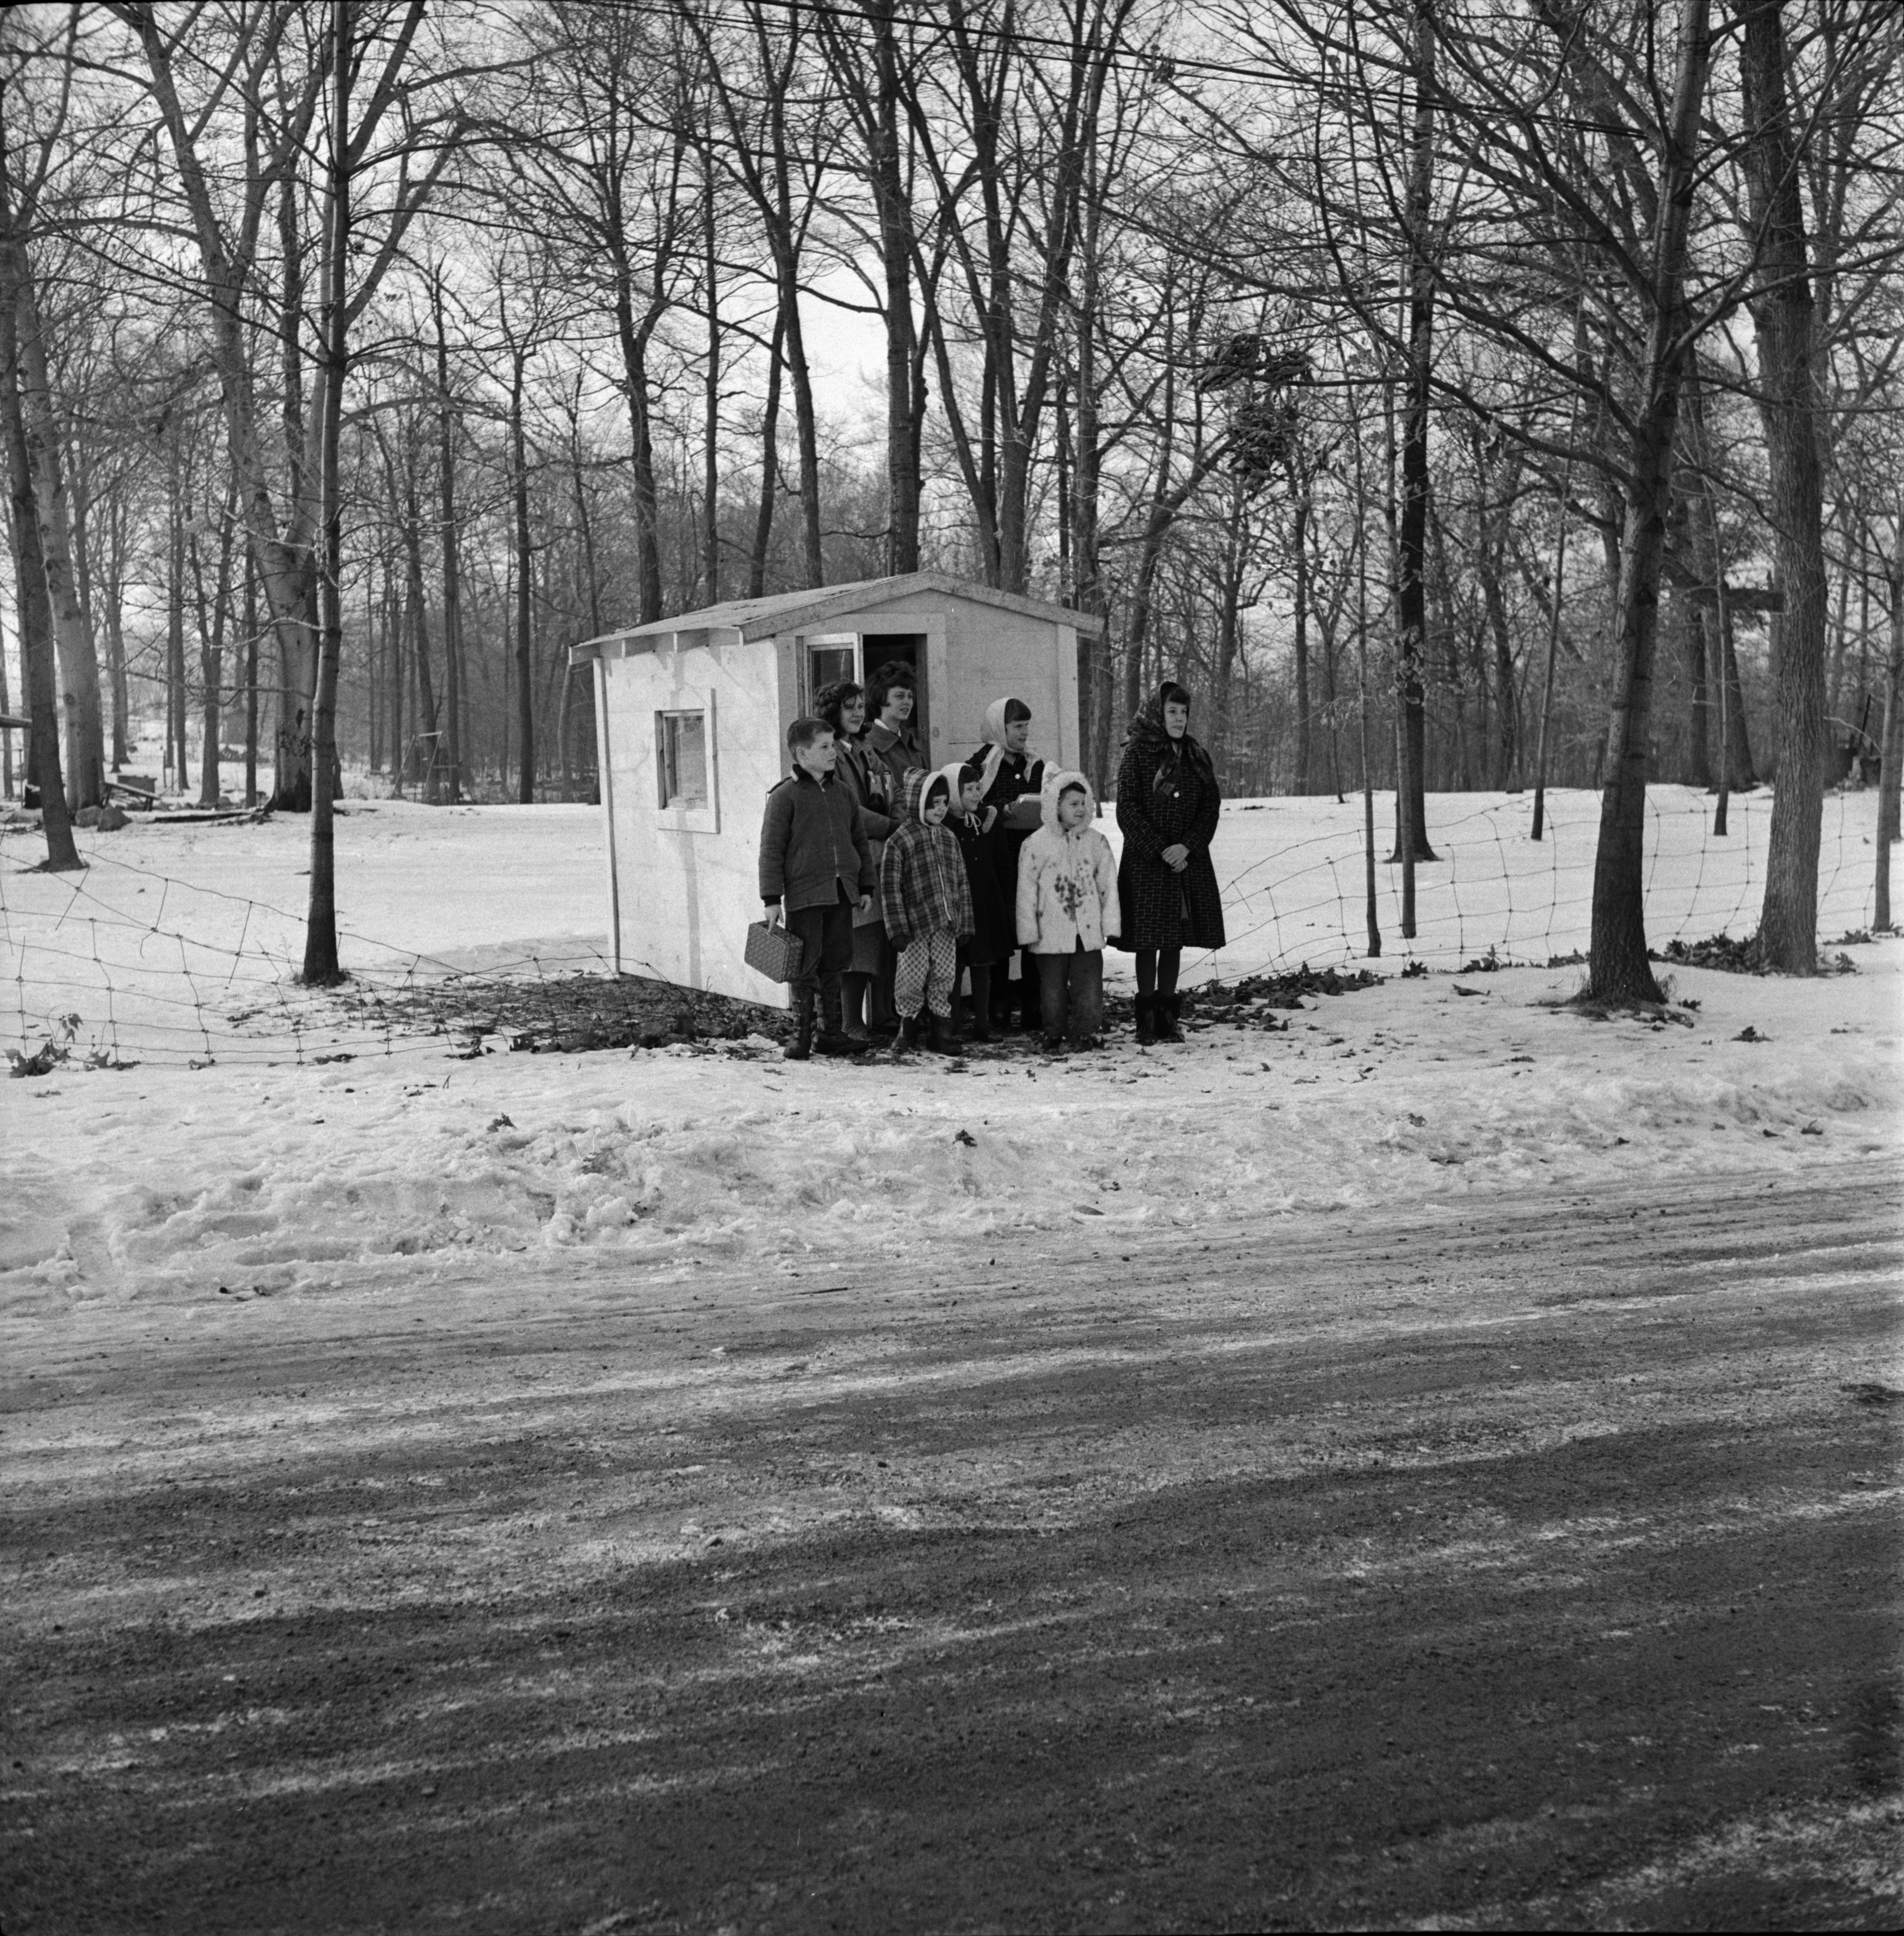 Children Pose in Front of Shelter on Waters Road, January 1963 image